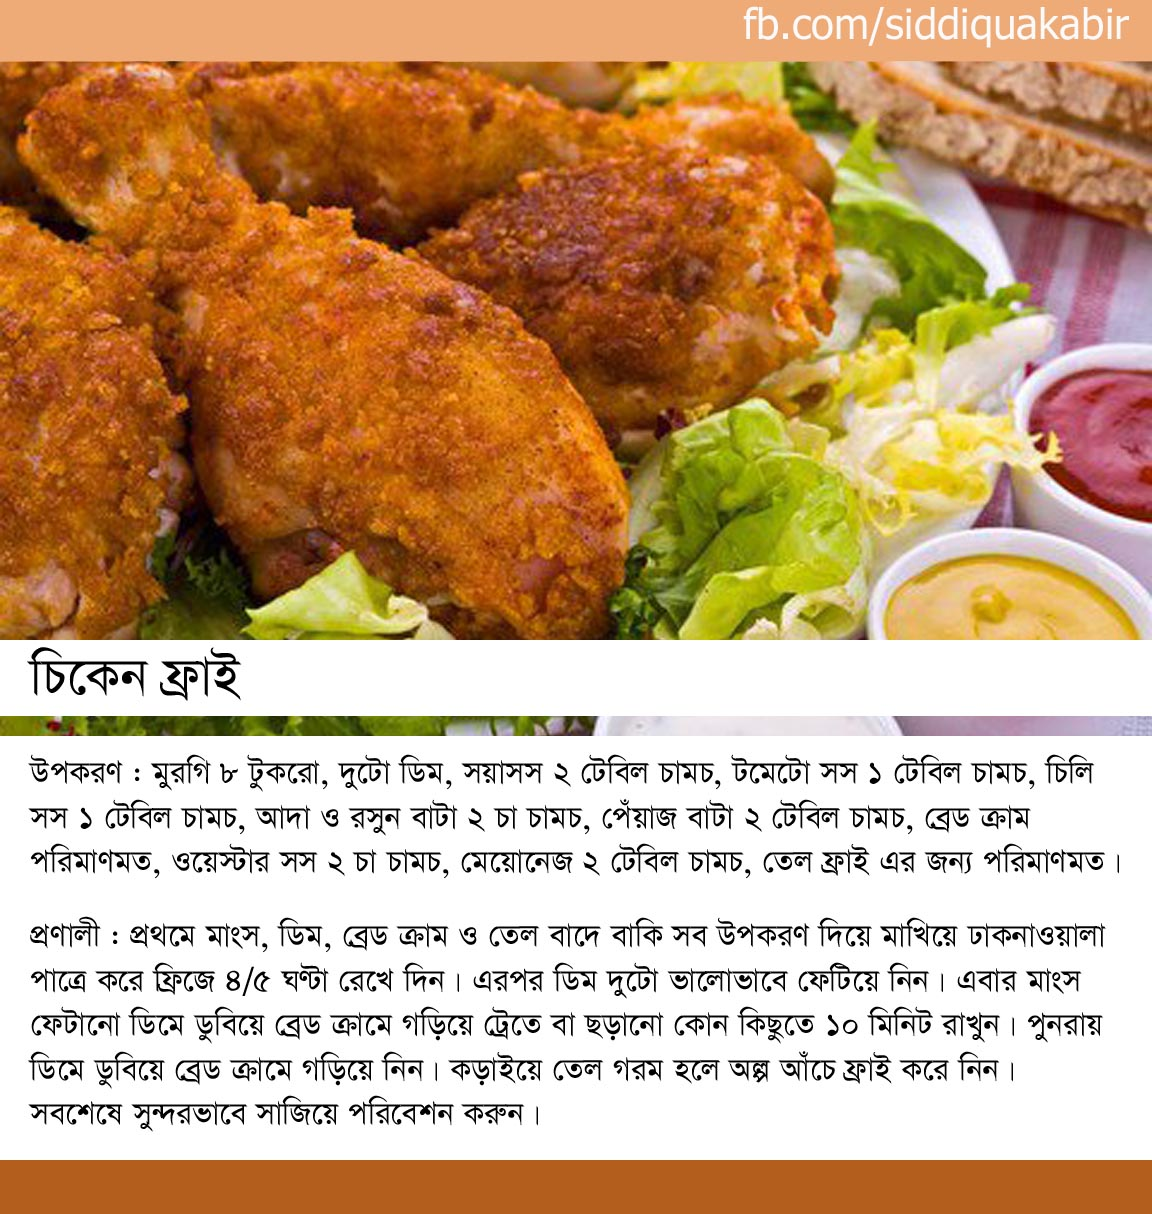 Siddiqua kabir bangali cooking chicken fry forumfinder Choice Image